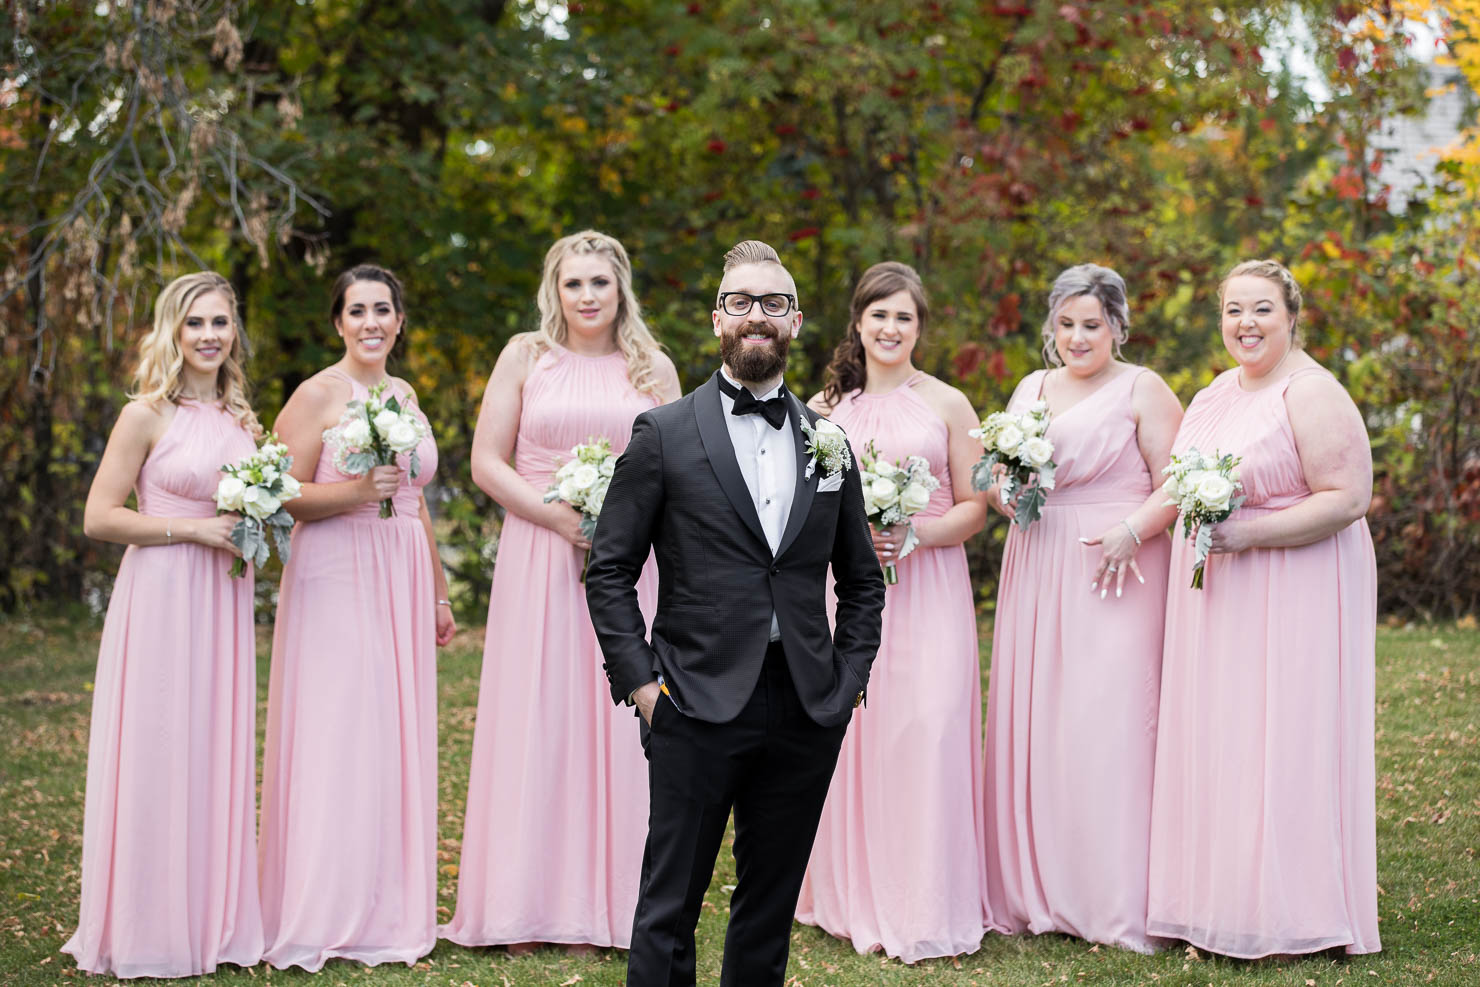 wedding, groom, bridesmaids, wedding, sudbury wedding, akaiserphoto, wedding photographer